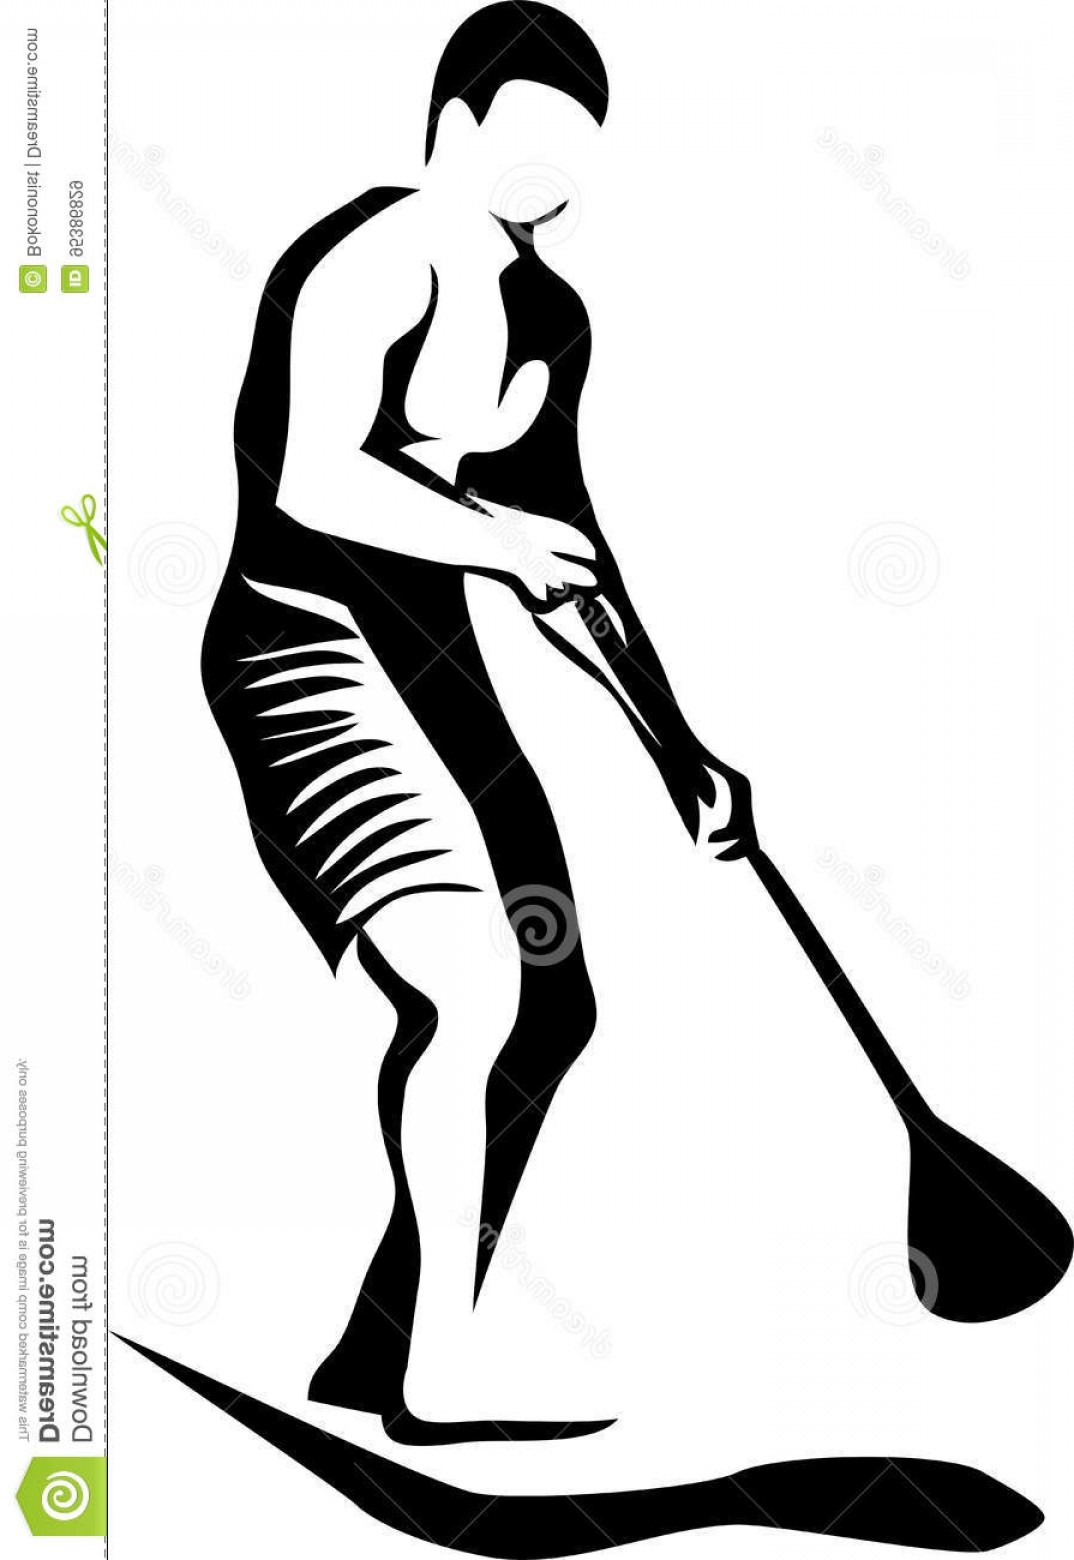 Stand Up Paddle Boarder Vector: Stock Illustration Paddleboard Stylized Black White Vector Illustration Image